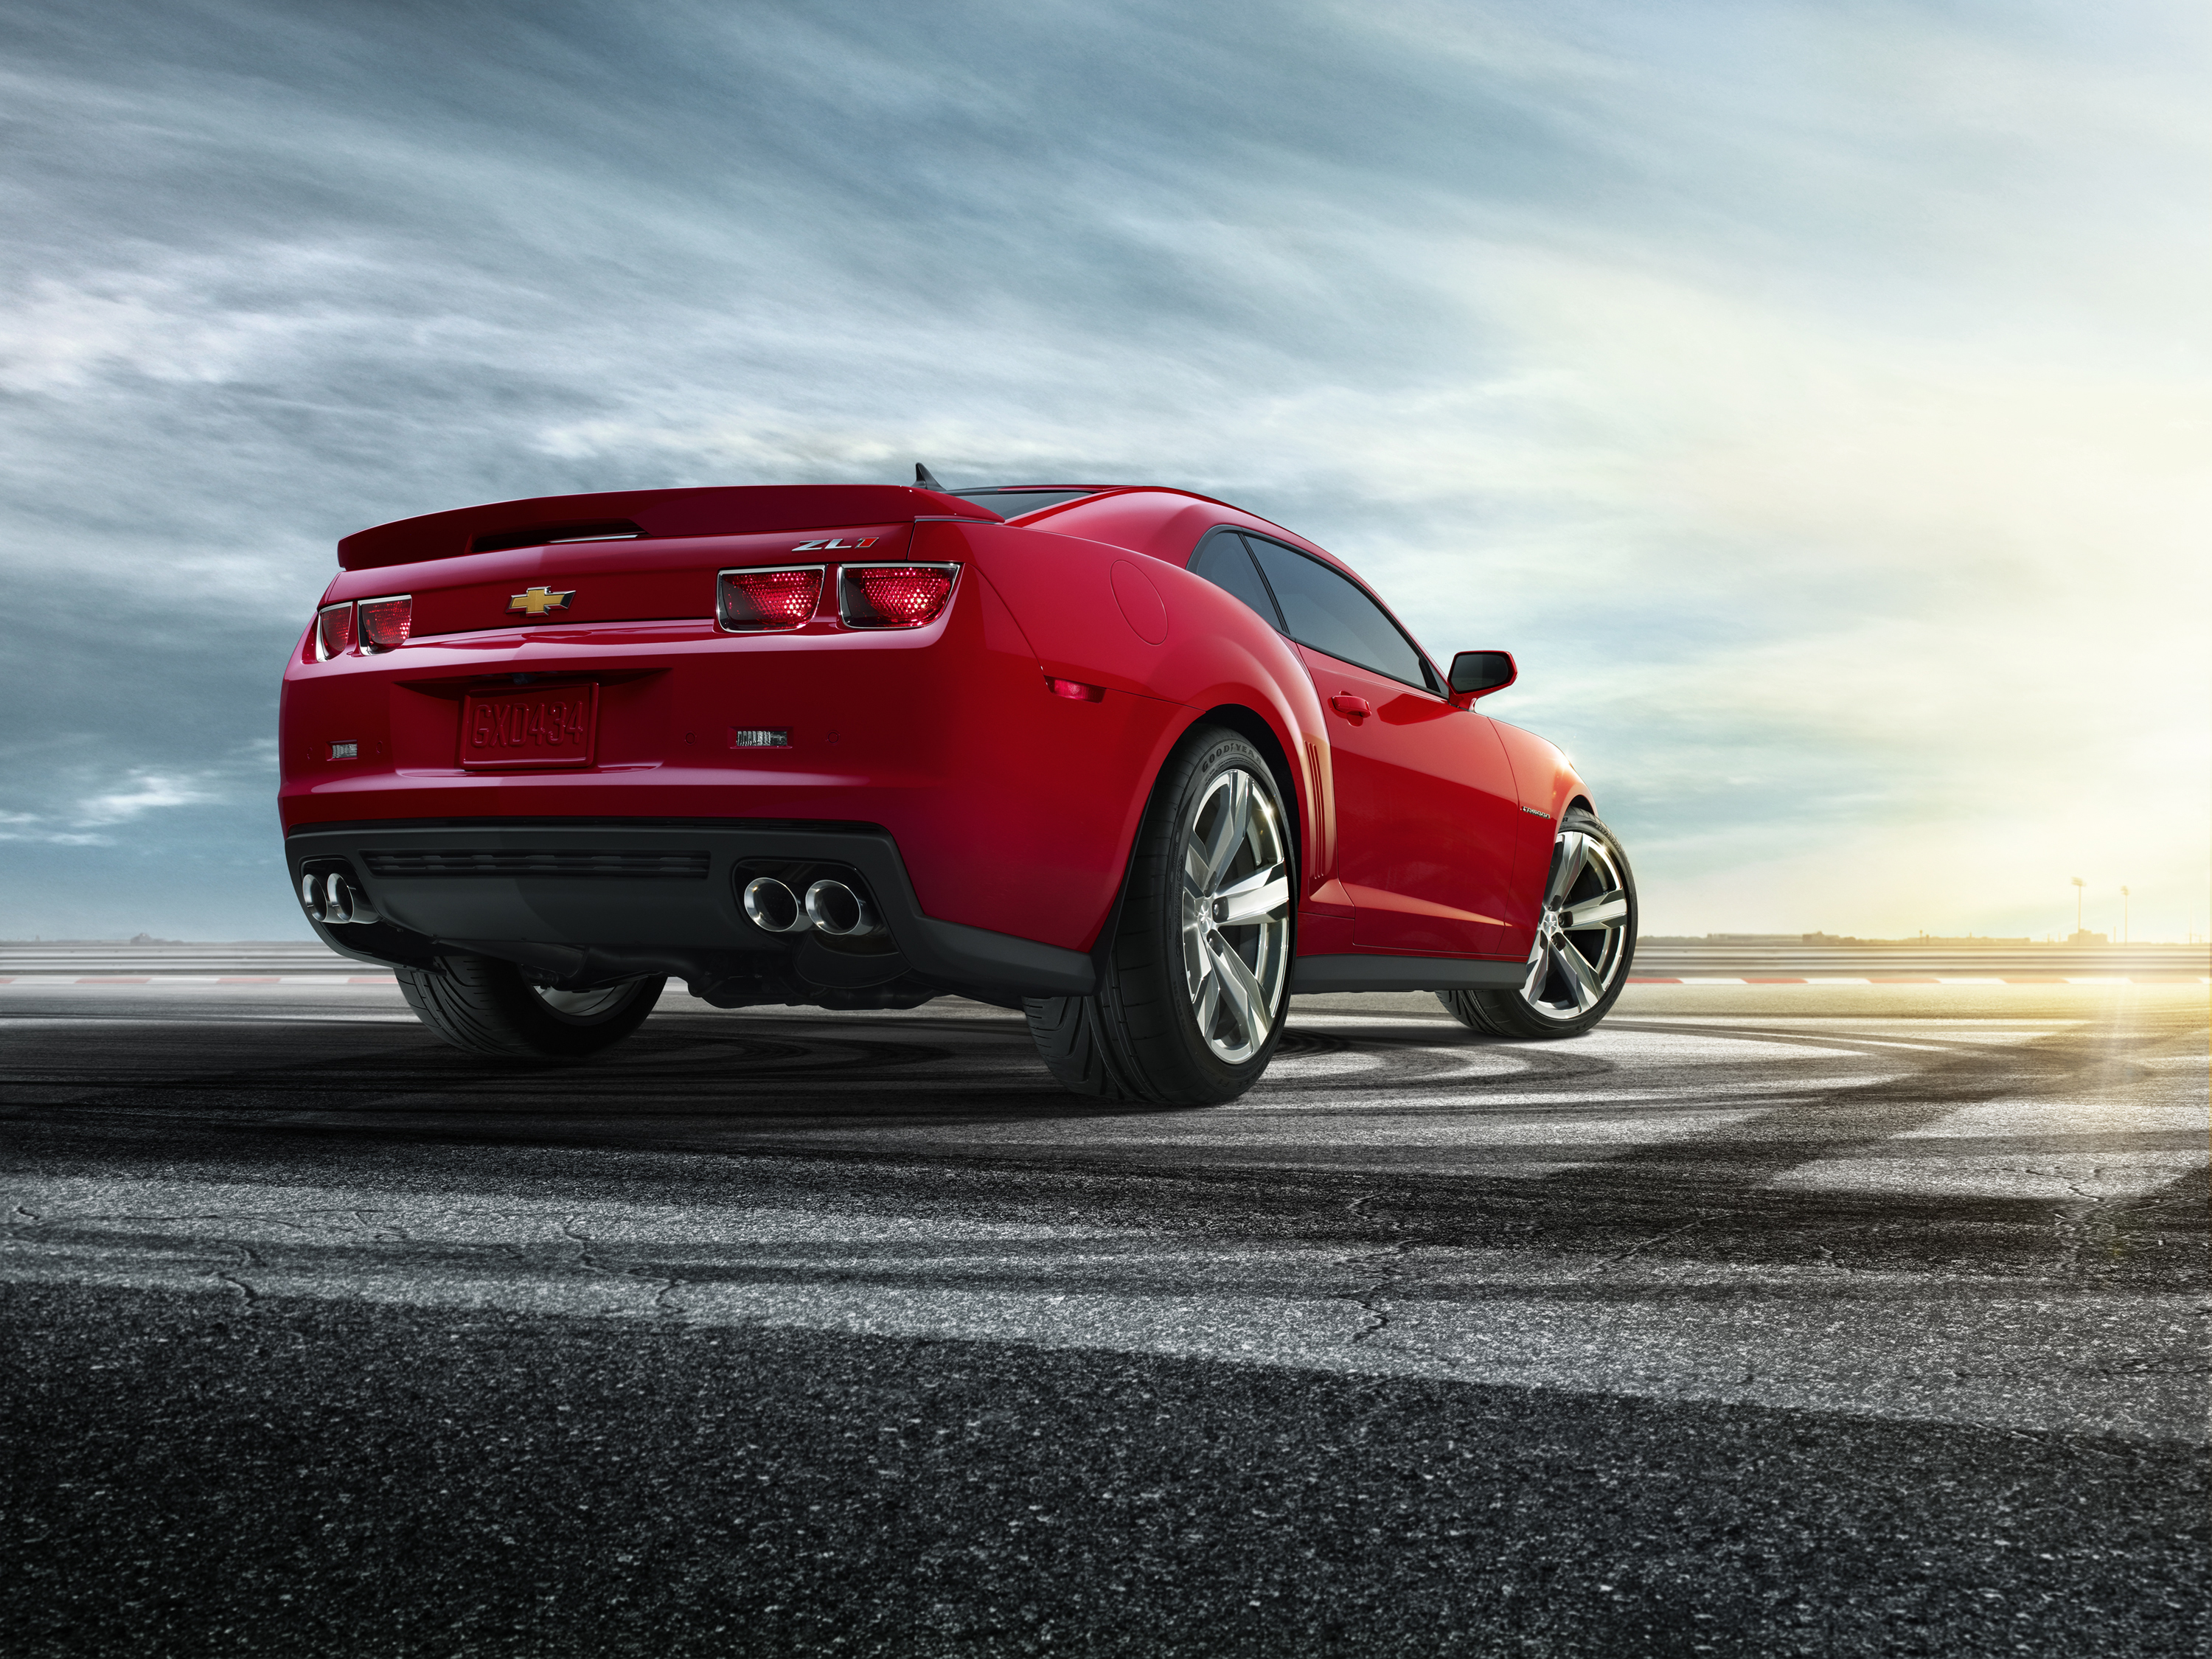 2012 Camaro Zl1 Wallpapers High Resolution Camaro5